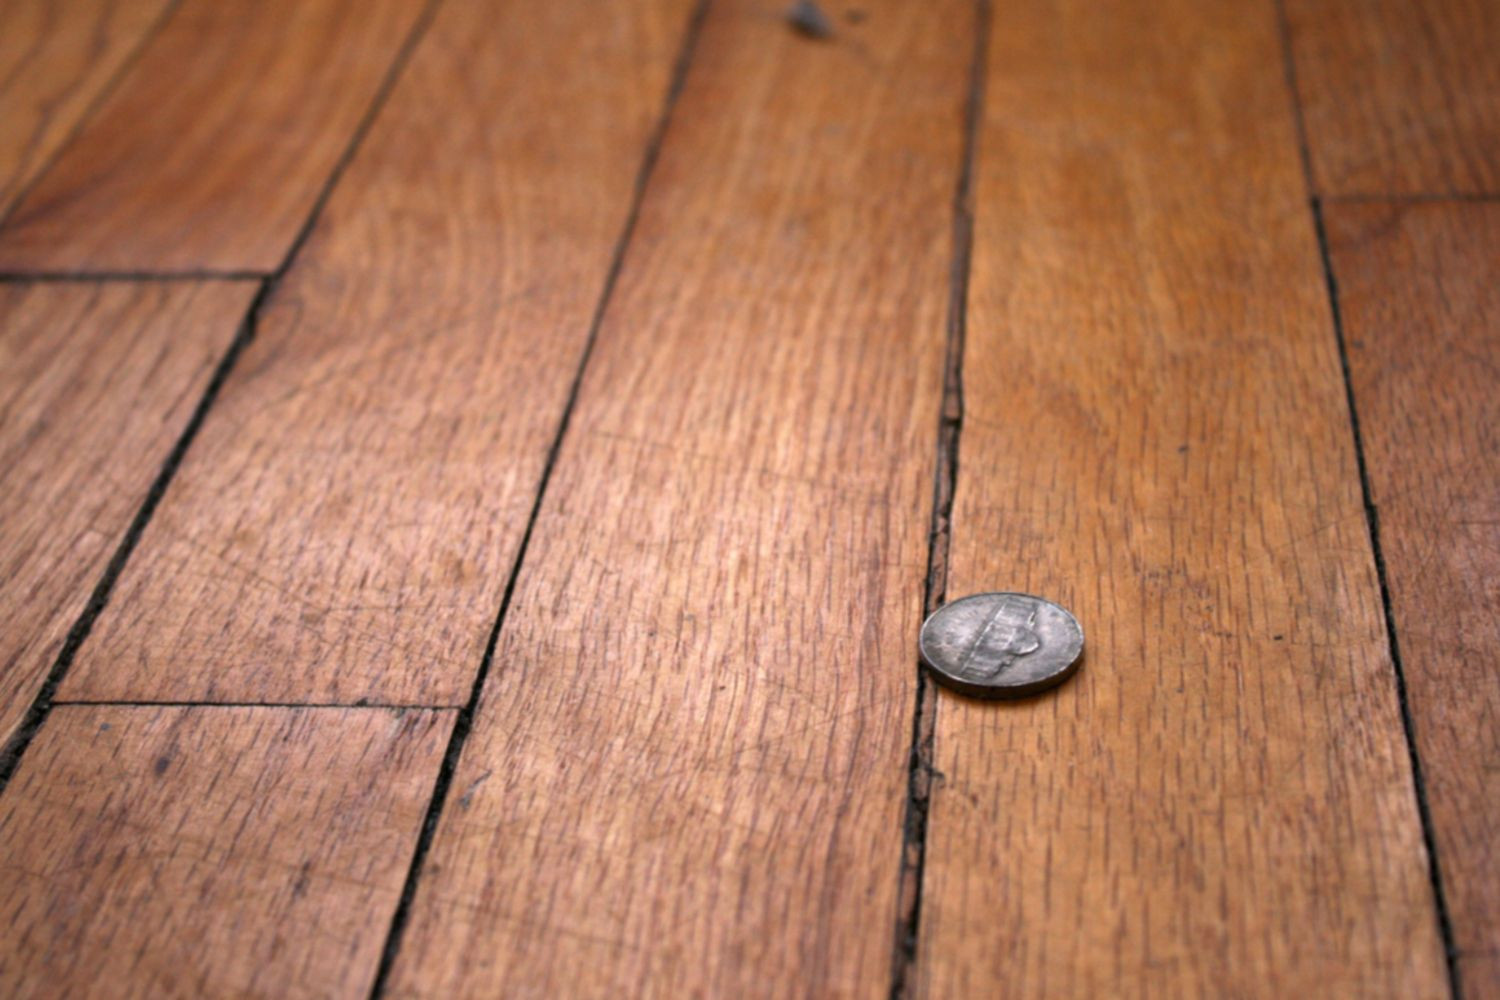 gaps in prefinished hardwood flooring of why your engineered wood flooring has gaps regarding wood floor with gaps between boards 1500 x 1000 56a49eb25f9b58b7d0d7df8d